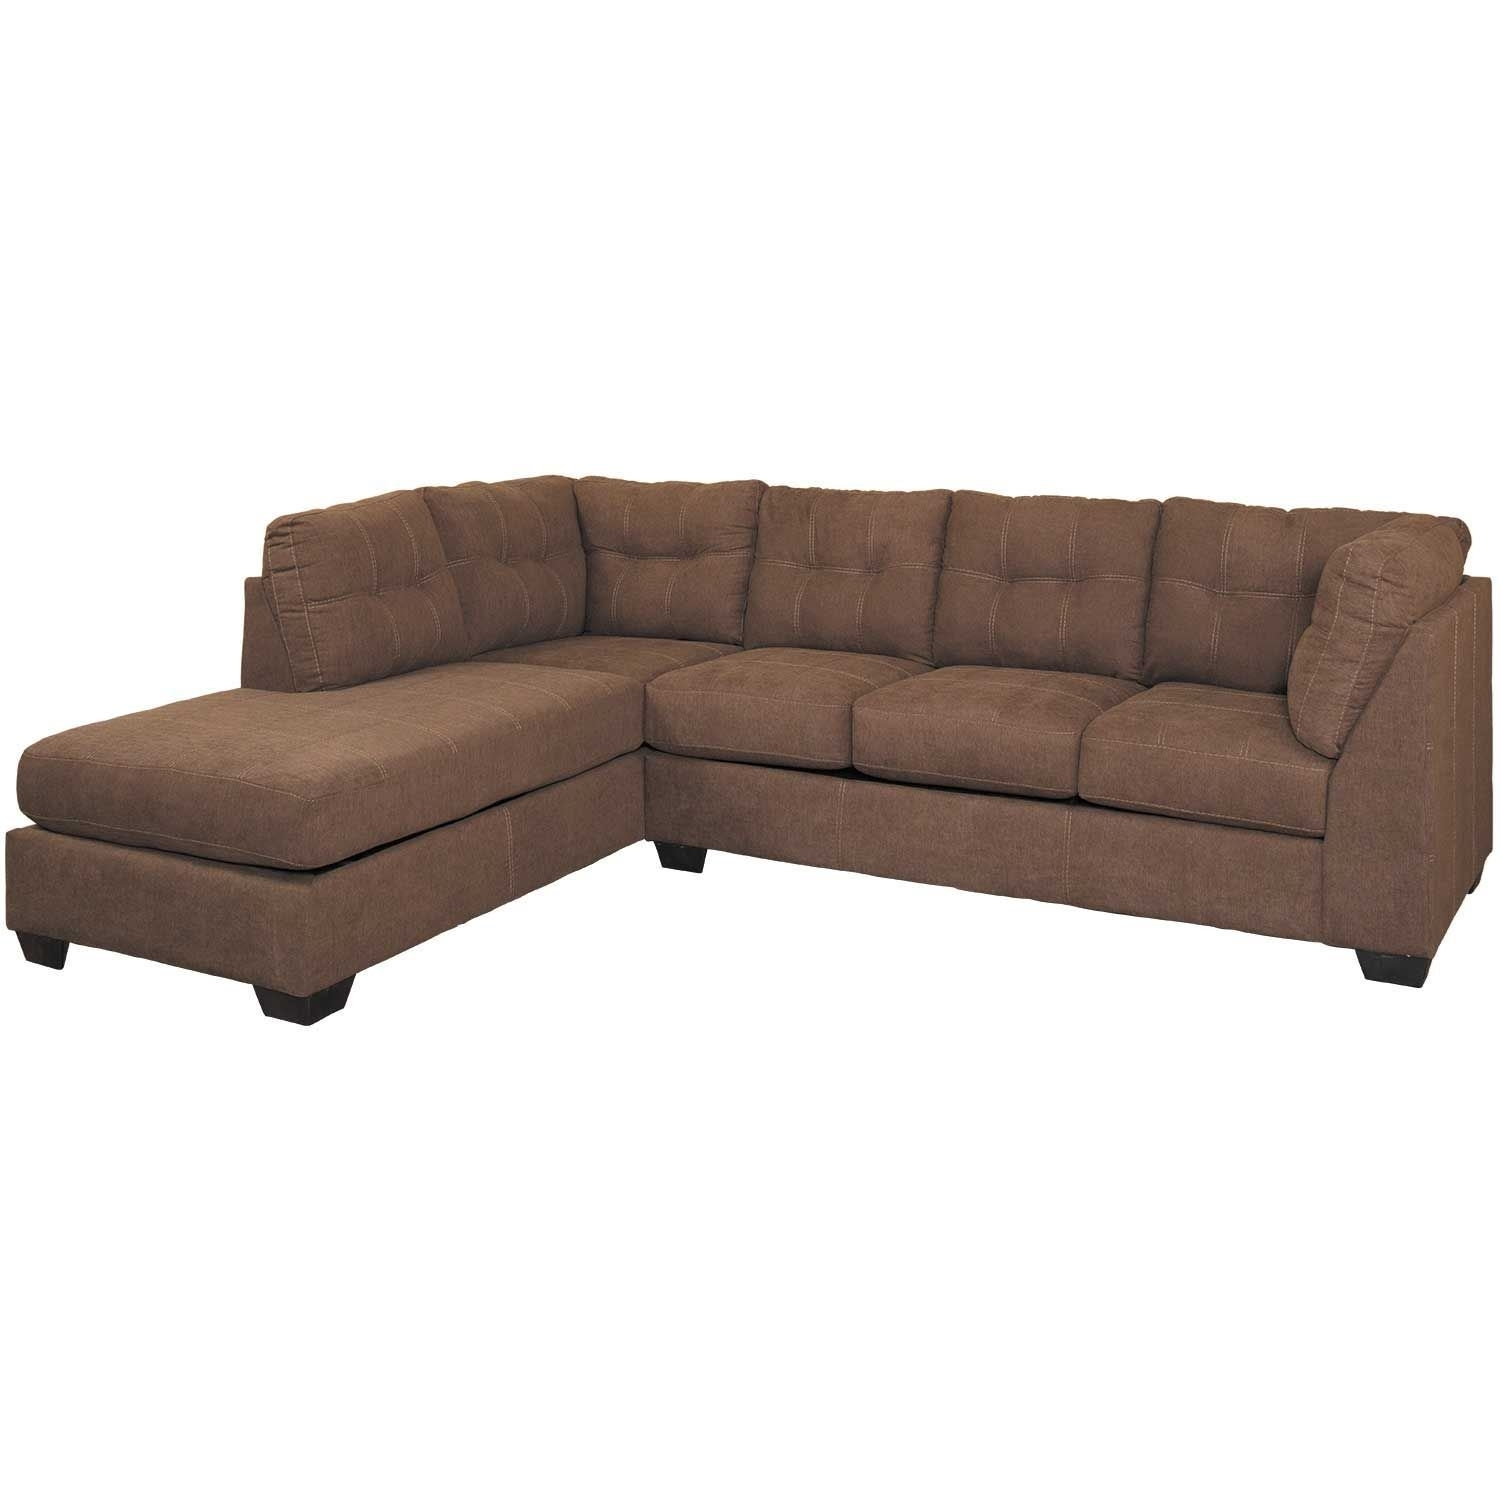 Maier Walnut 2 Piece Sectional With Laf Chaise | 4520116/67 | Ashley in Arrowmask 2 Piece Sectionals With Sleeper & Left Facing Chaise (Image 19 of 30)